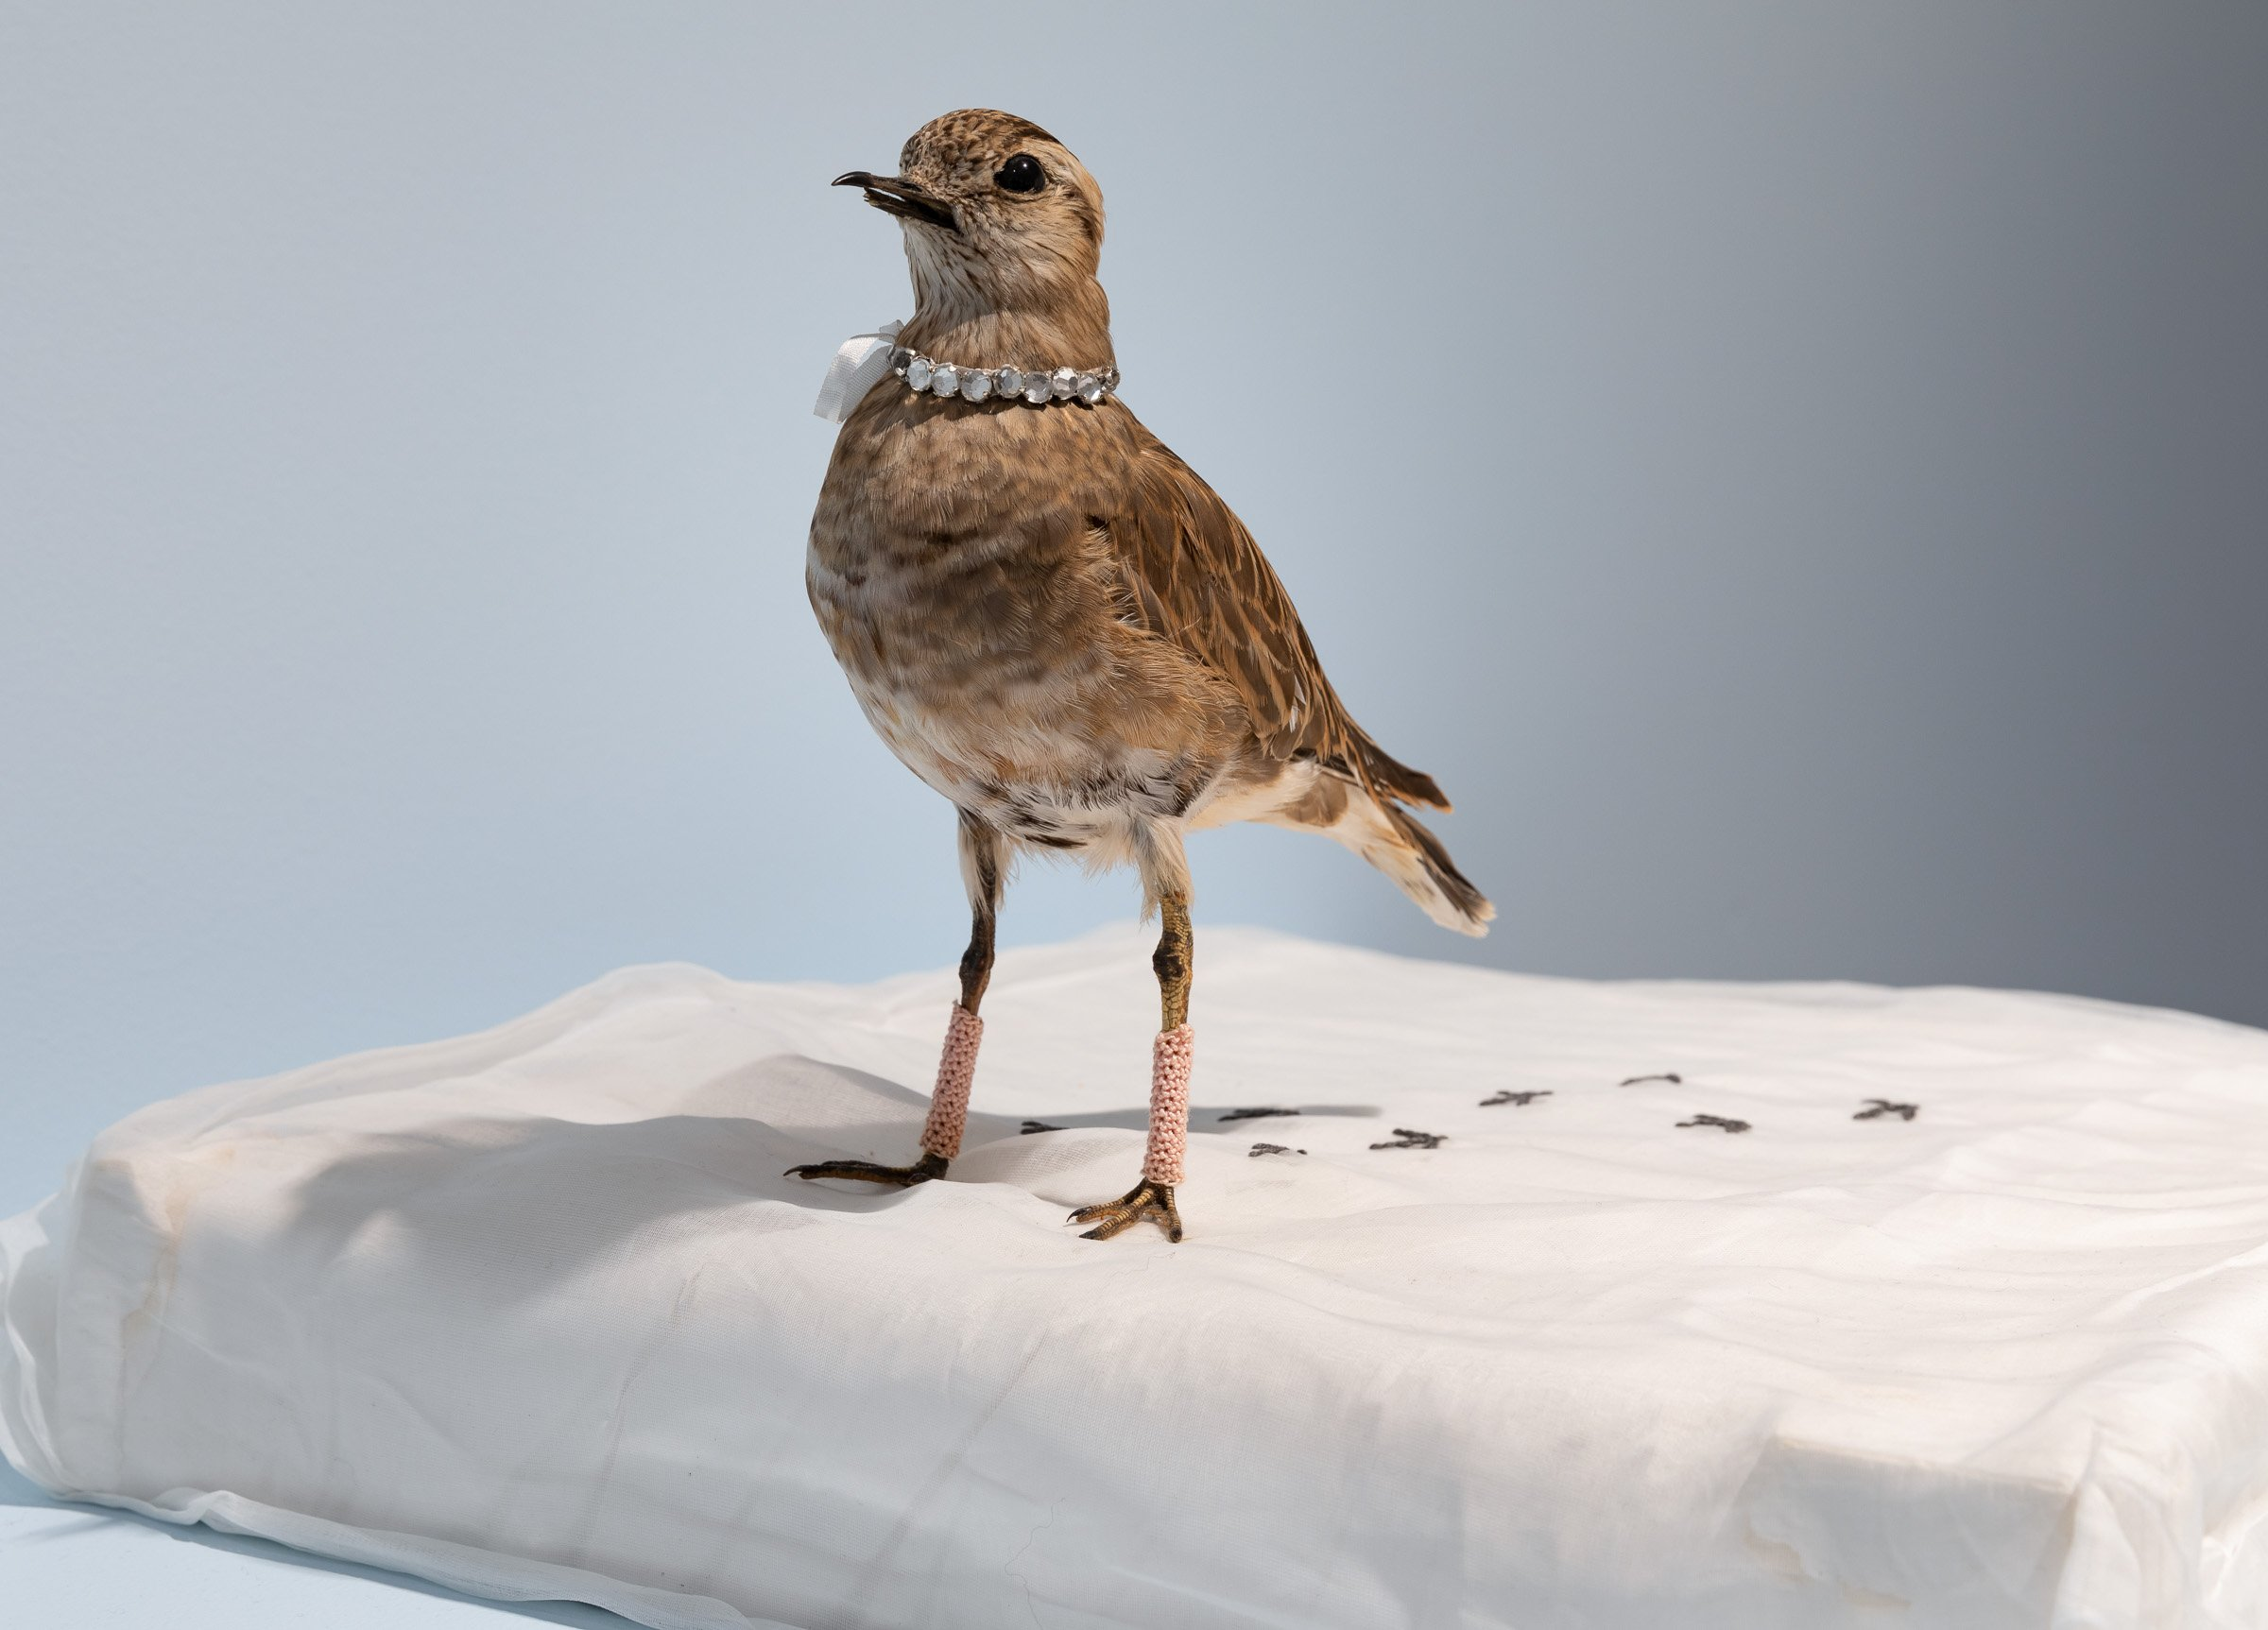 Close-up picture of a taxidermy bird wearing a jewlled necklace and crocheted leg warmers.